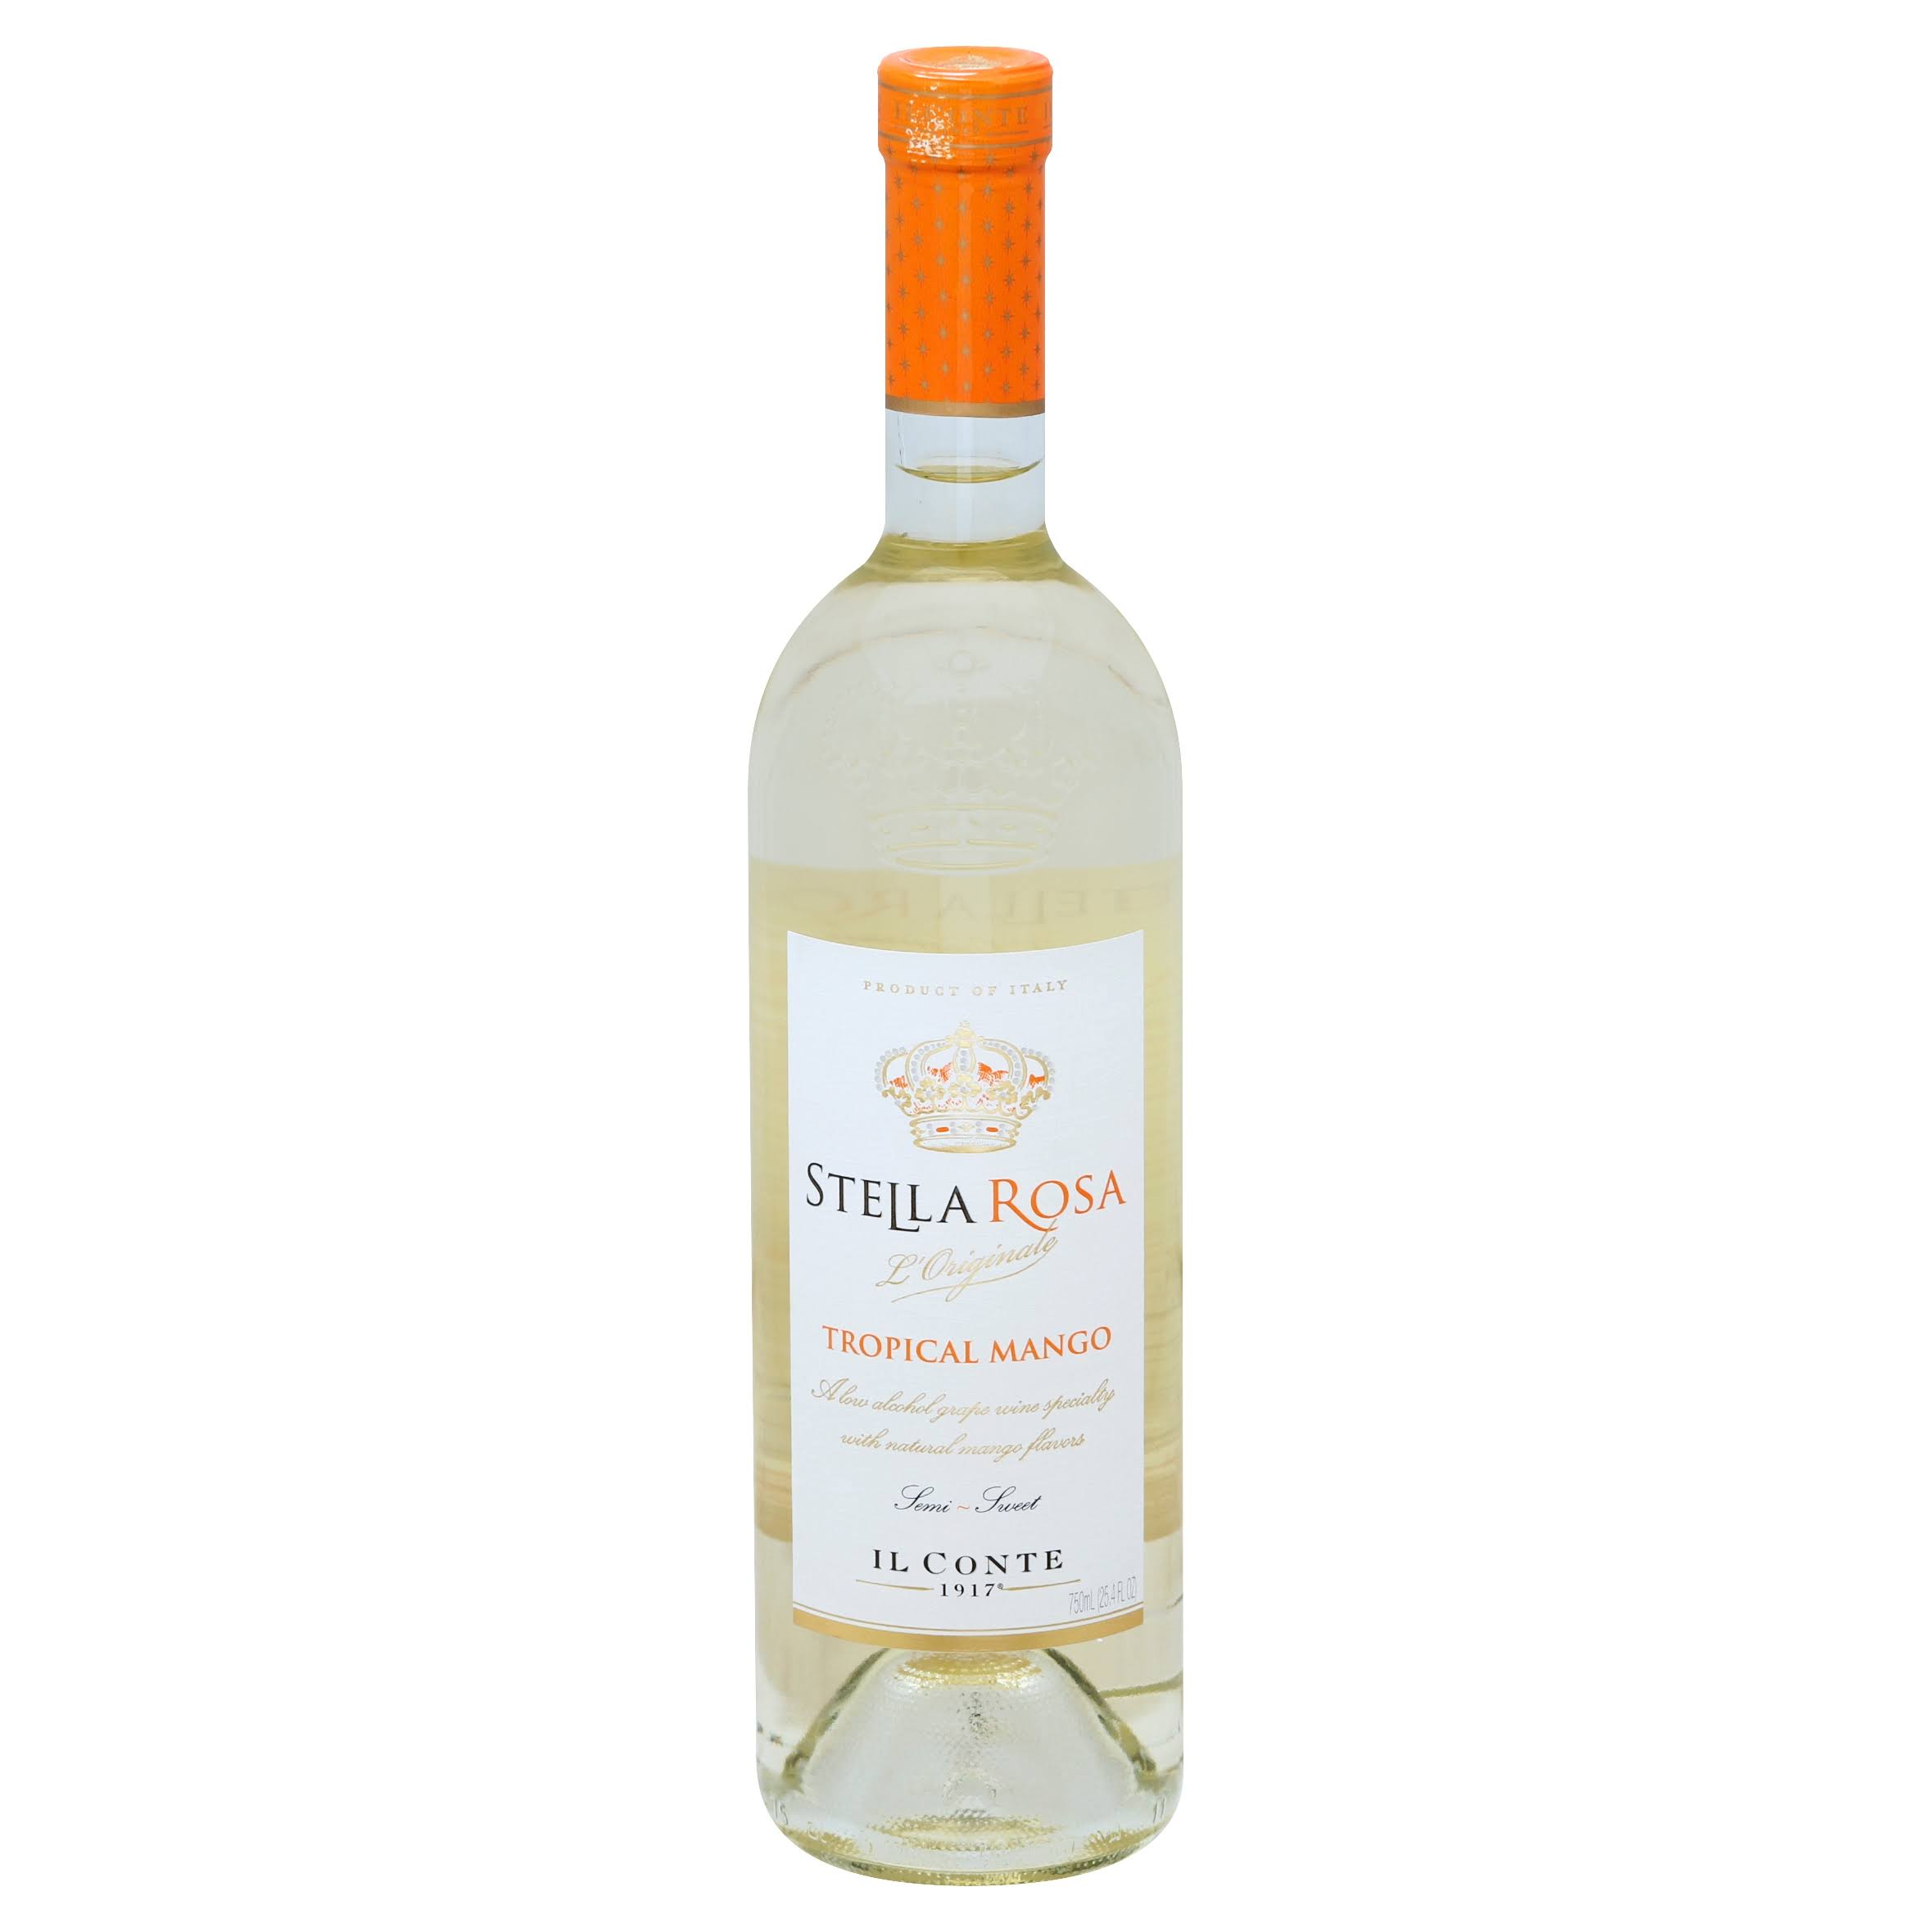 Stella Rosa L'Originale Wine, Tropical Mango, Semi-Sweet - 25.4 fl oz